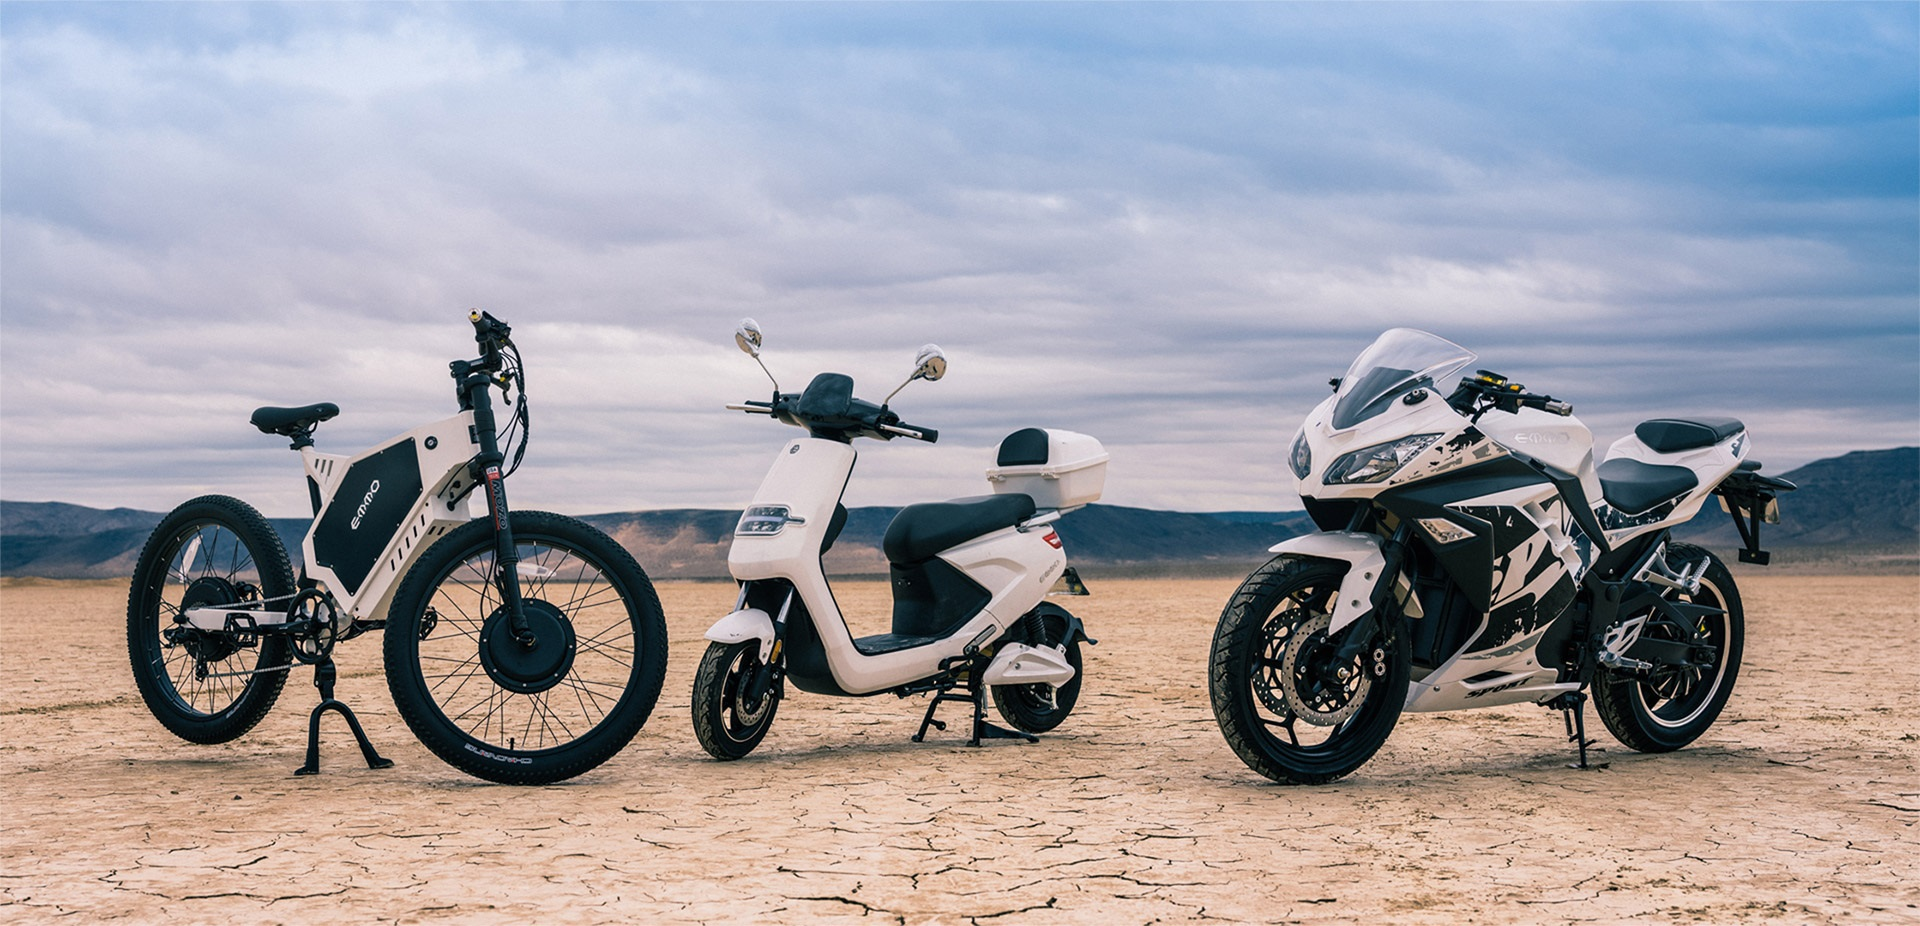 Emmo Canada: Ebikes, Electric Bicycles, Electric Motorcycles